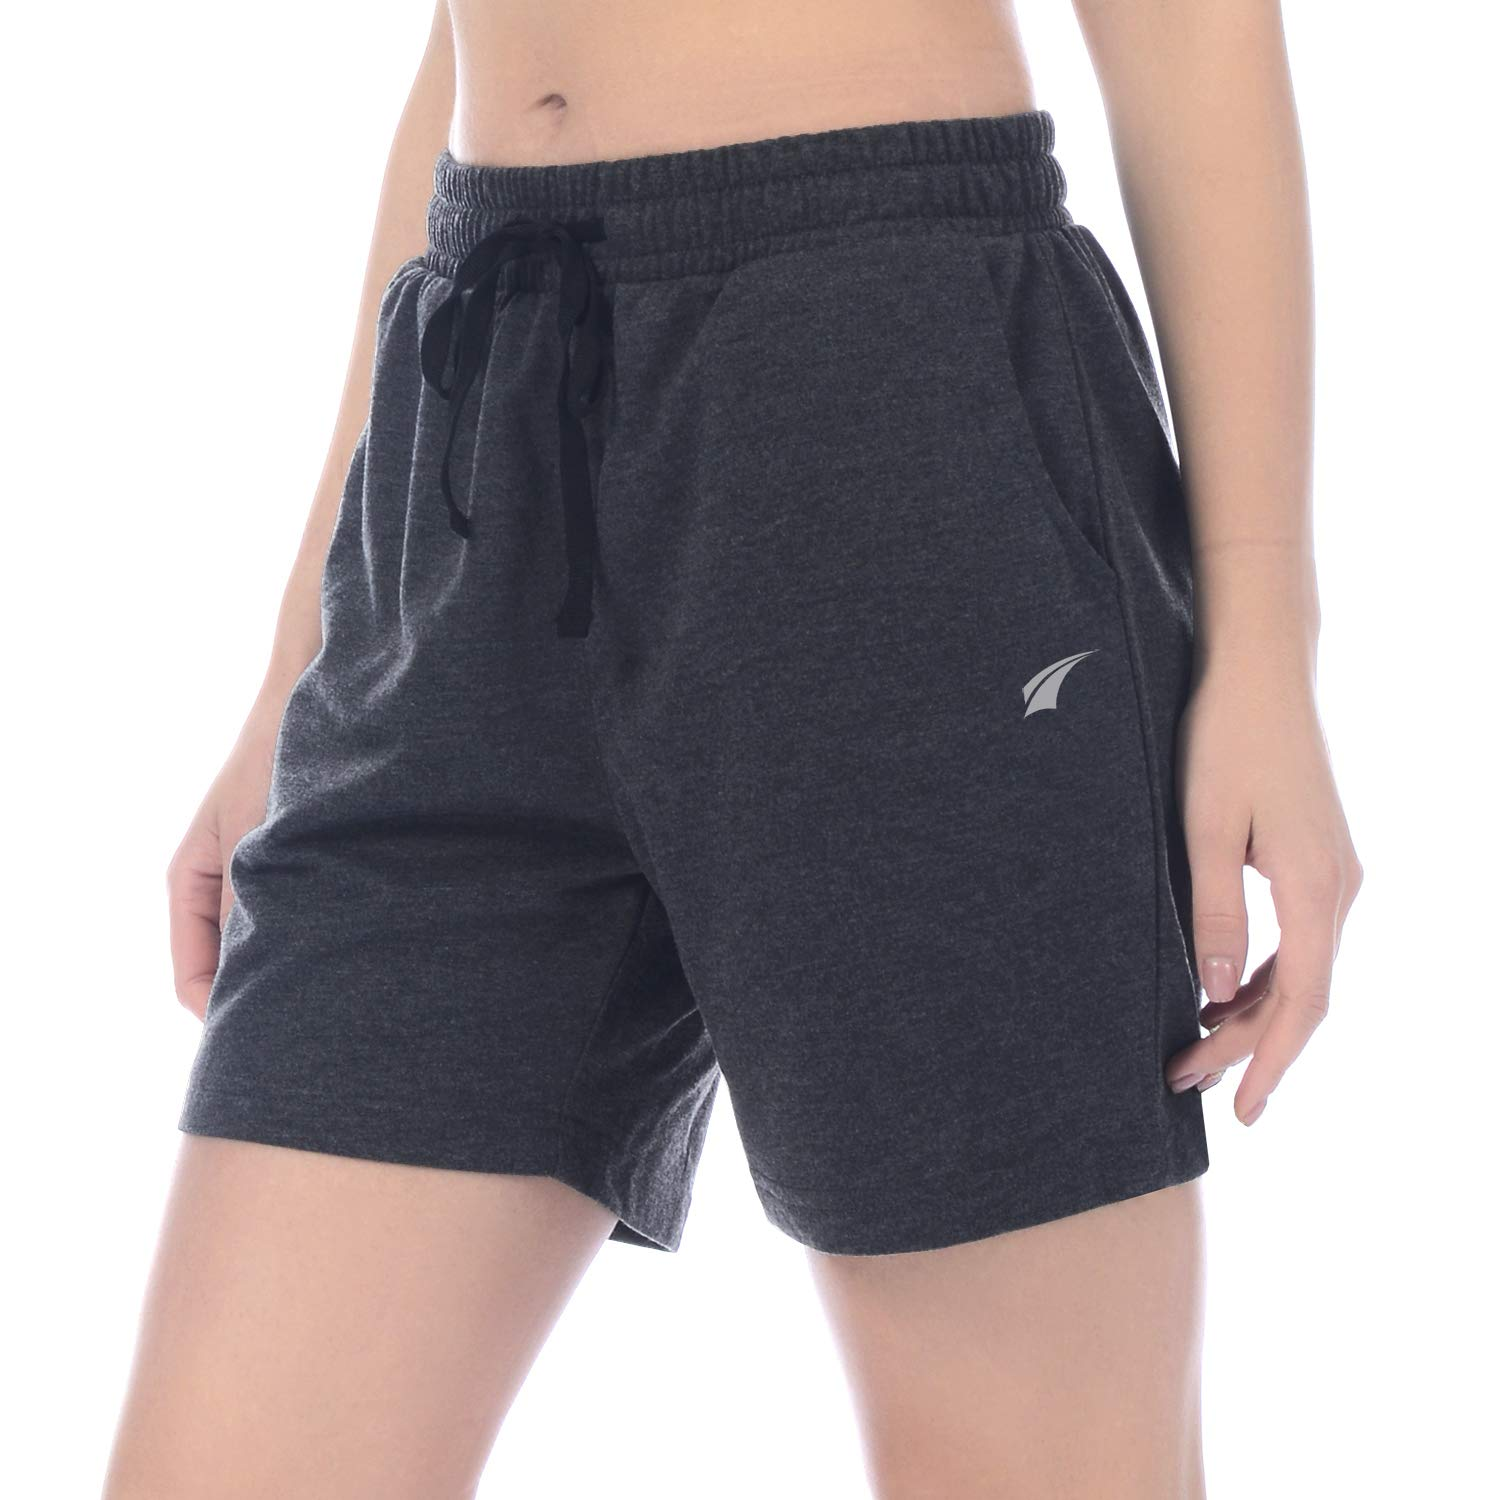 Charcoal EZRUN Women's Active Workout Jogger Shorts Lounge Activewear Yoga Shorts with Pockets